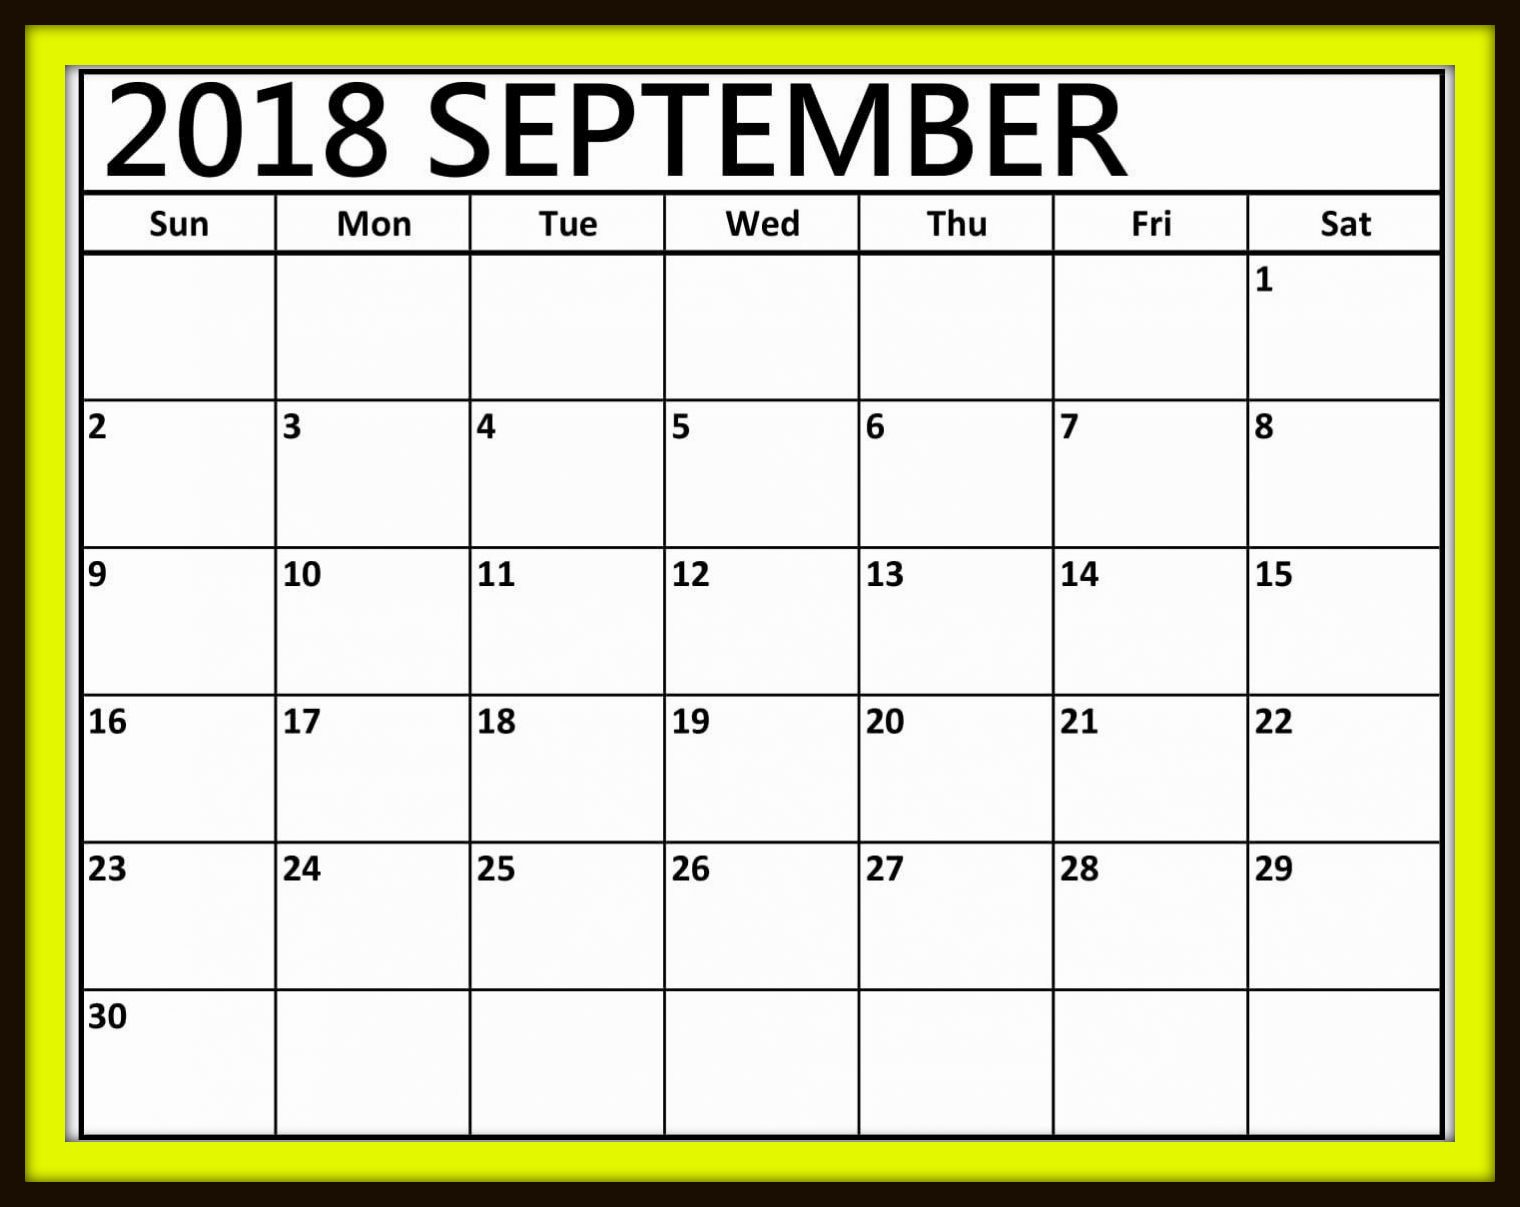 September 2018 Calendar Word printable Template